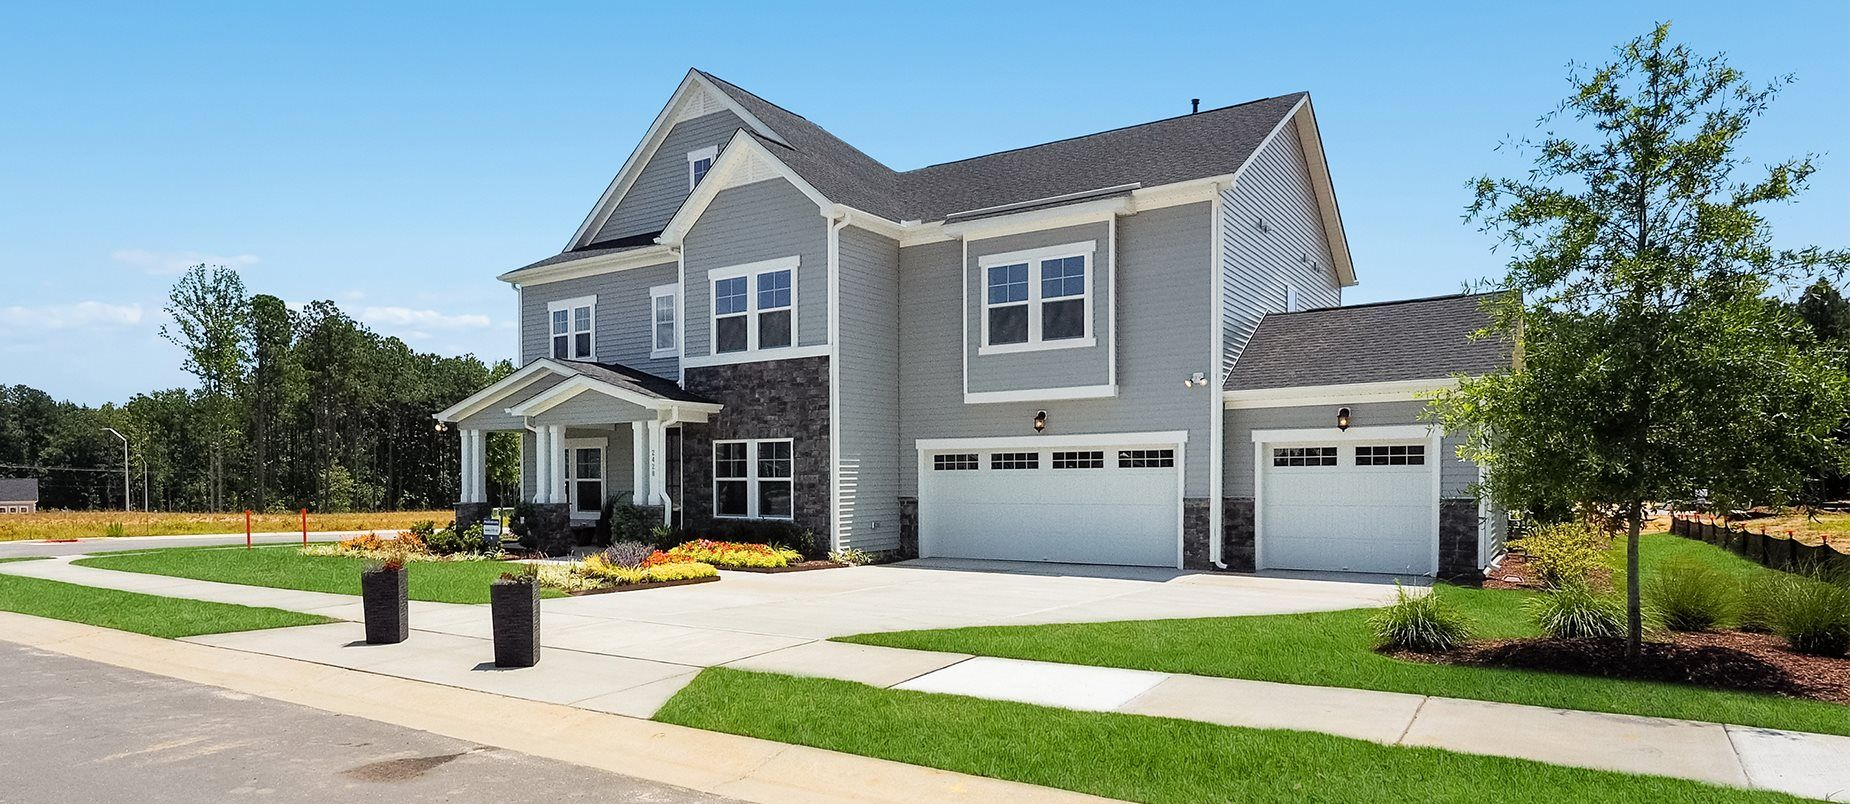 Meadowbrook - Highland Collection,27526